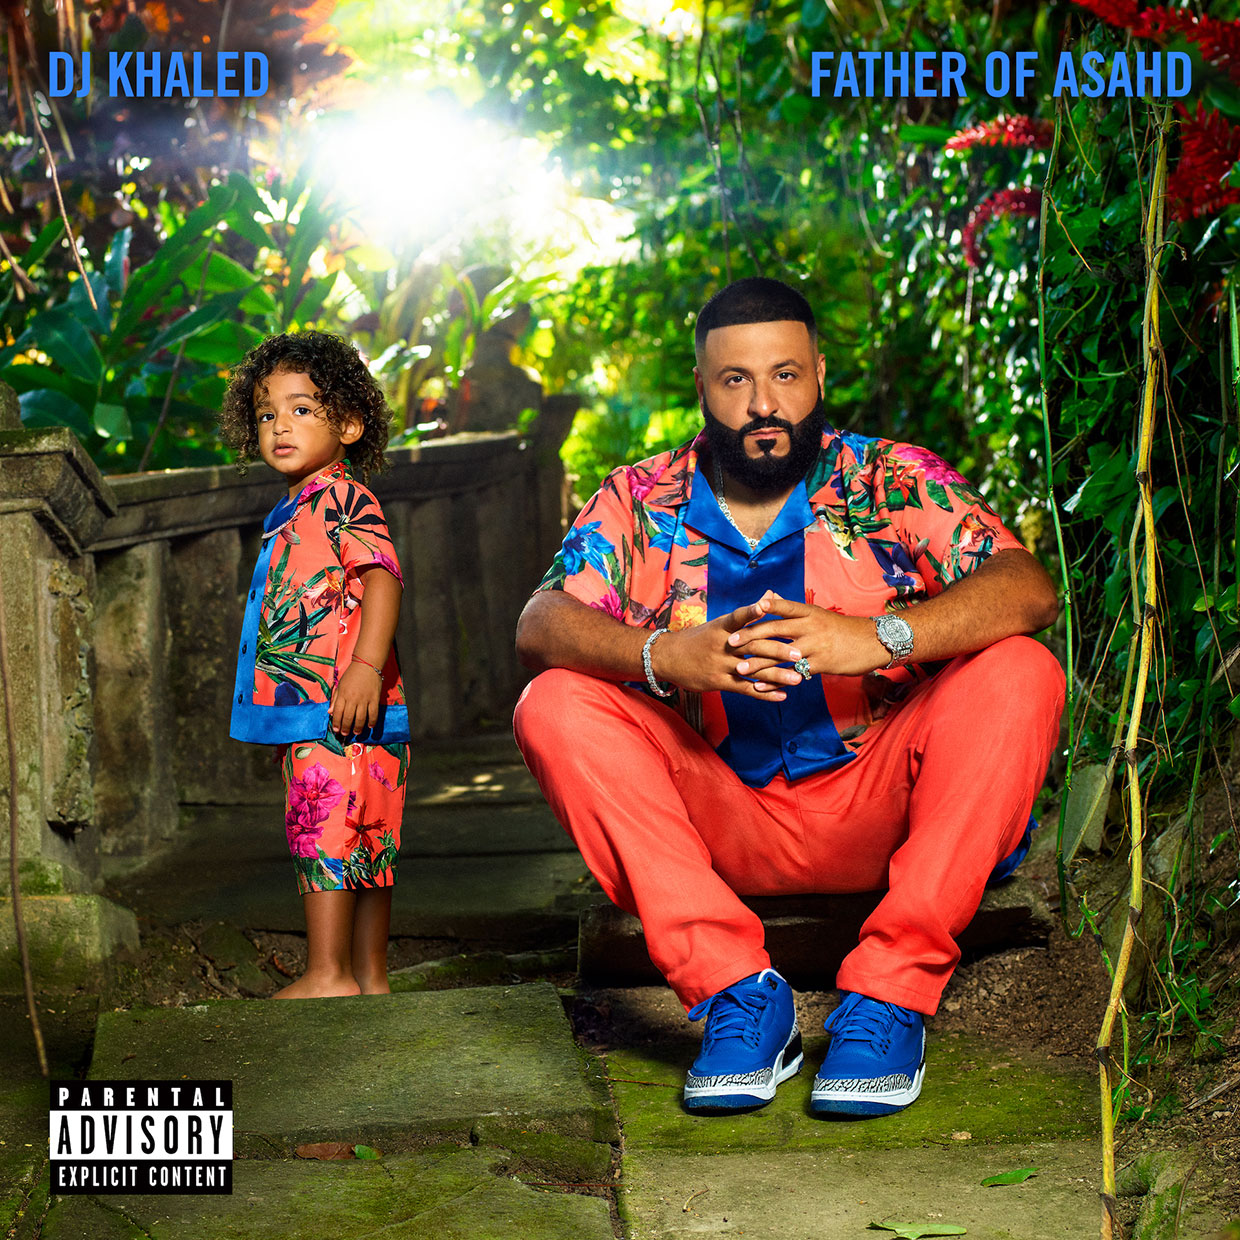 dj khaled father of asahd 2019 billboard embed DJ Khaled drops Father of Asahd, featuring Nipsey Hussle, Beyoncé, and Jay Z: Stream